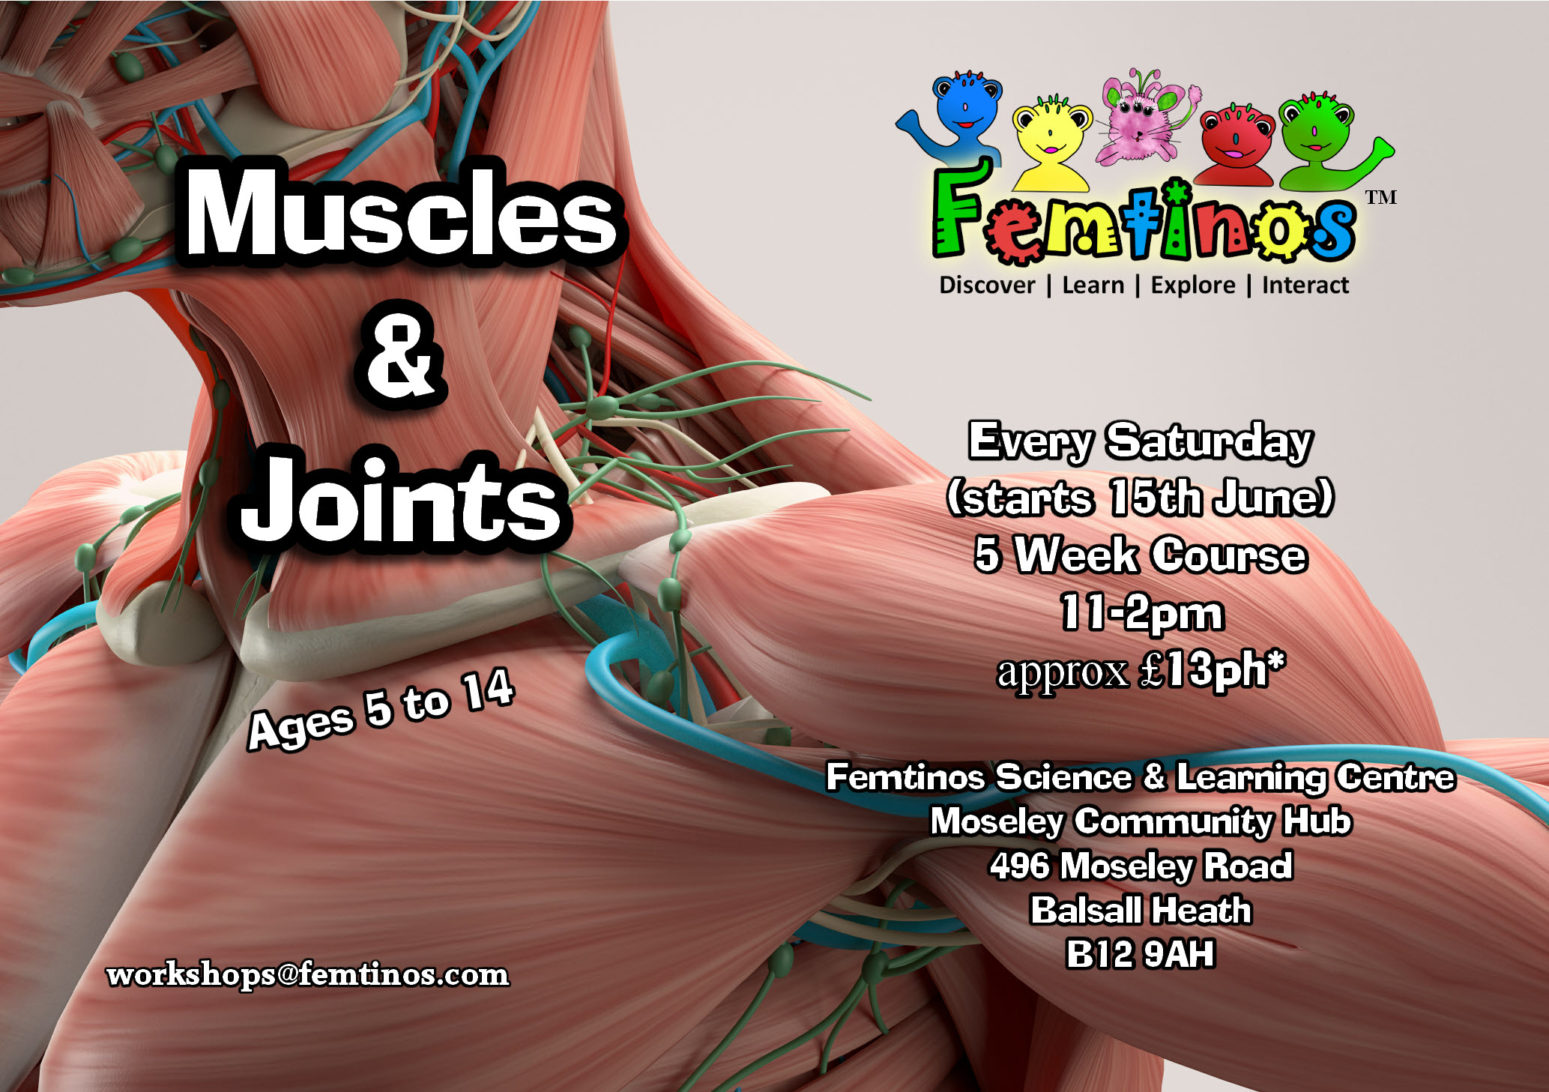 Muscles & Joints Advert